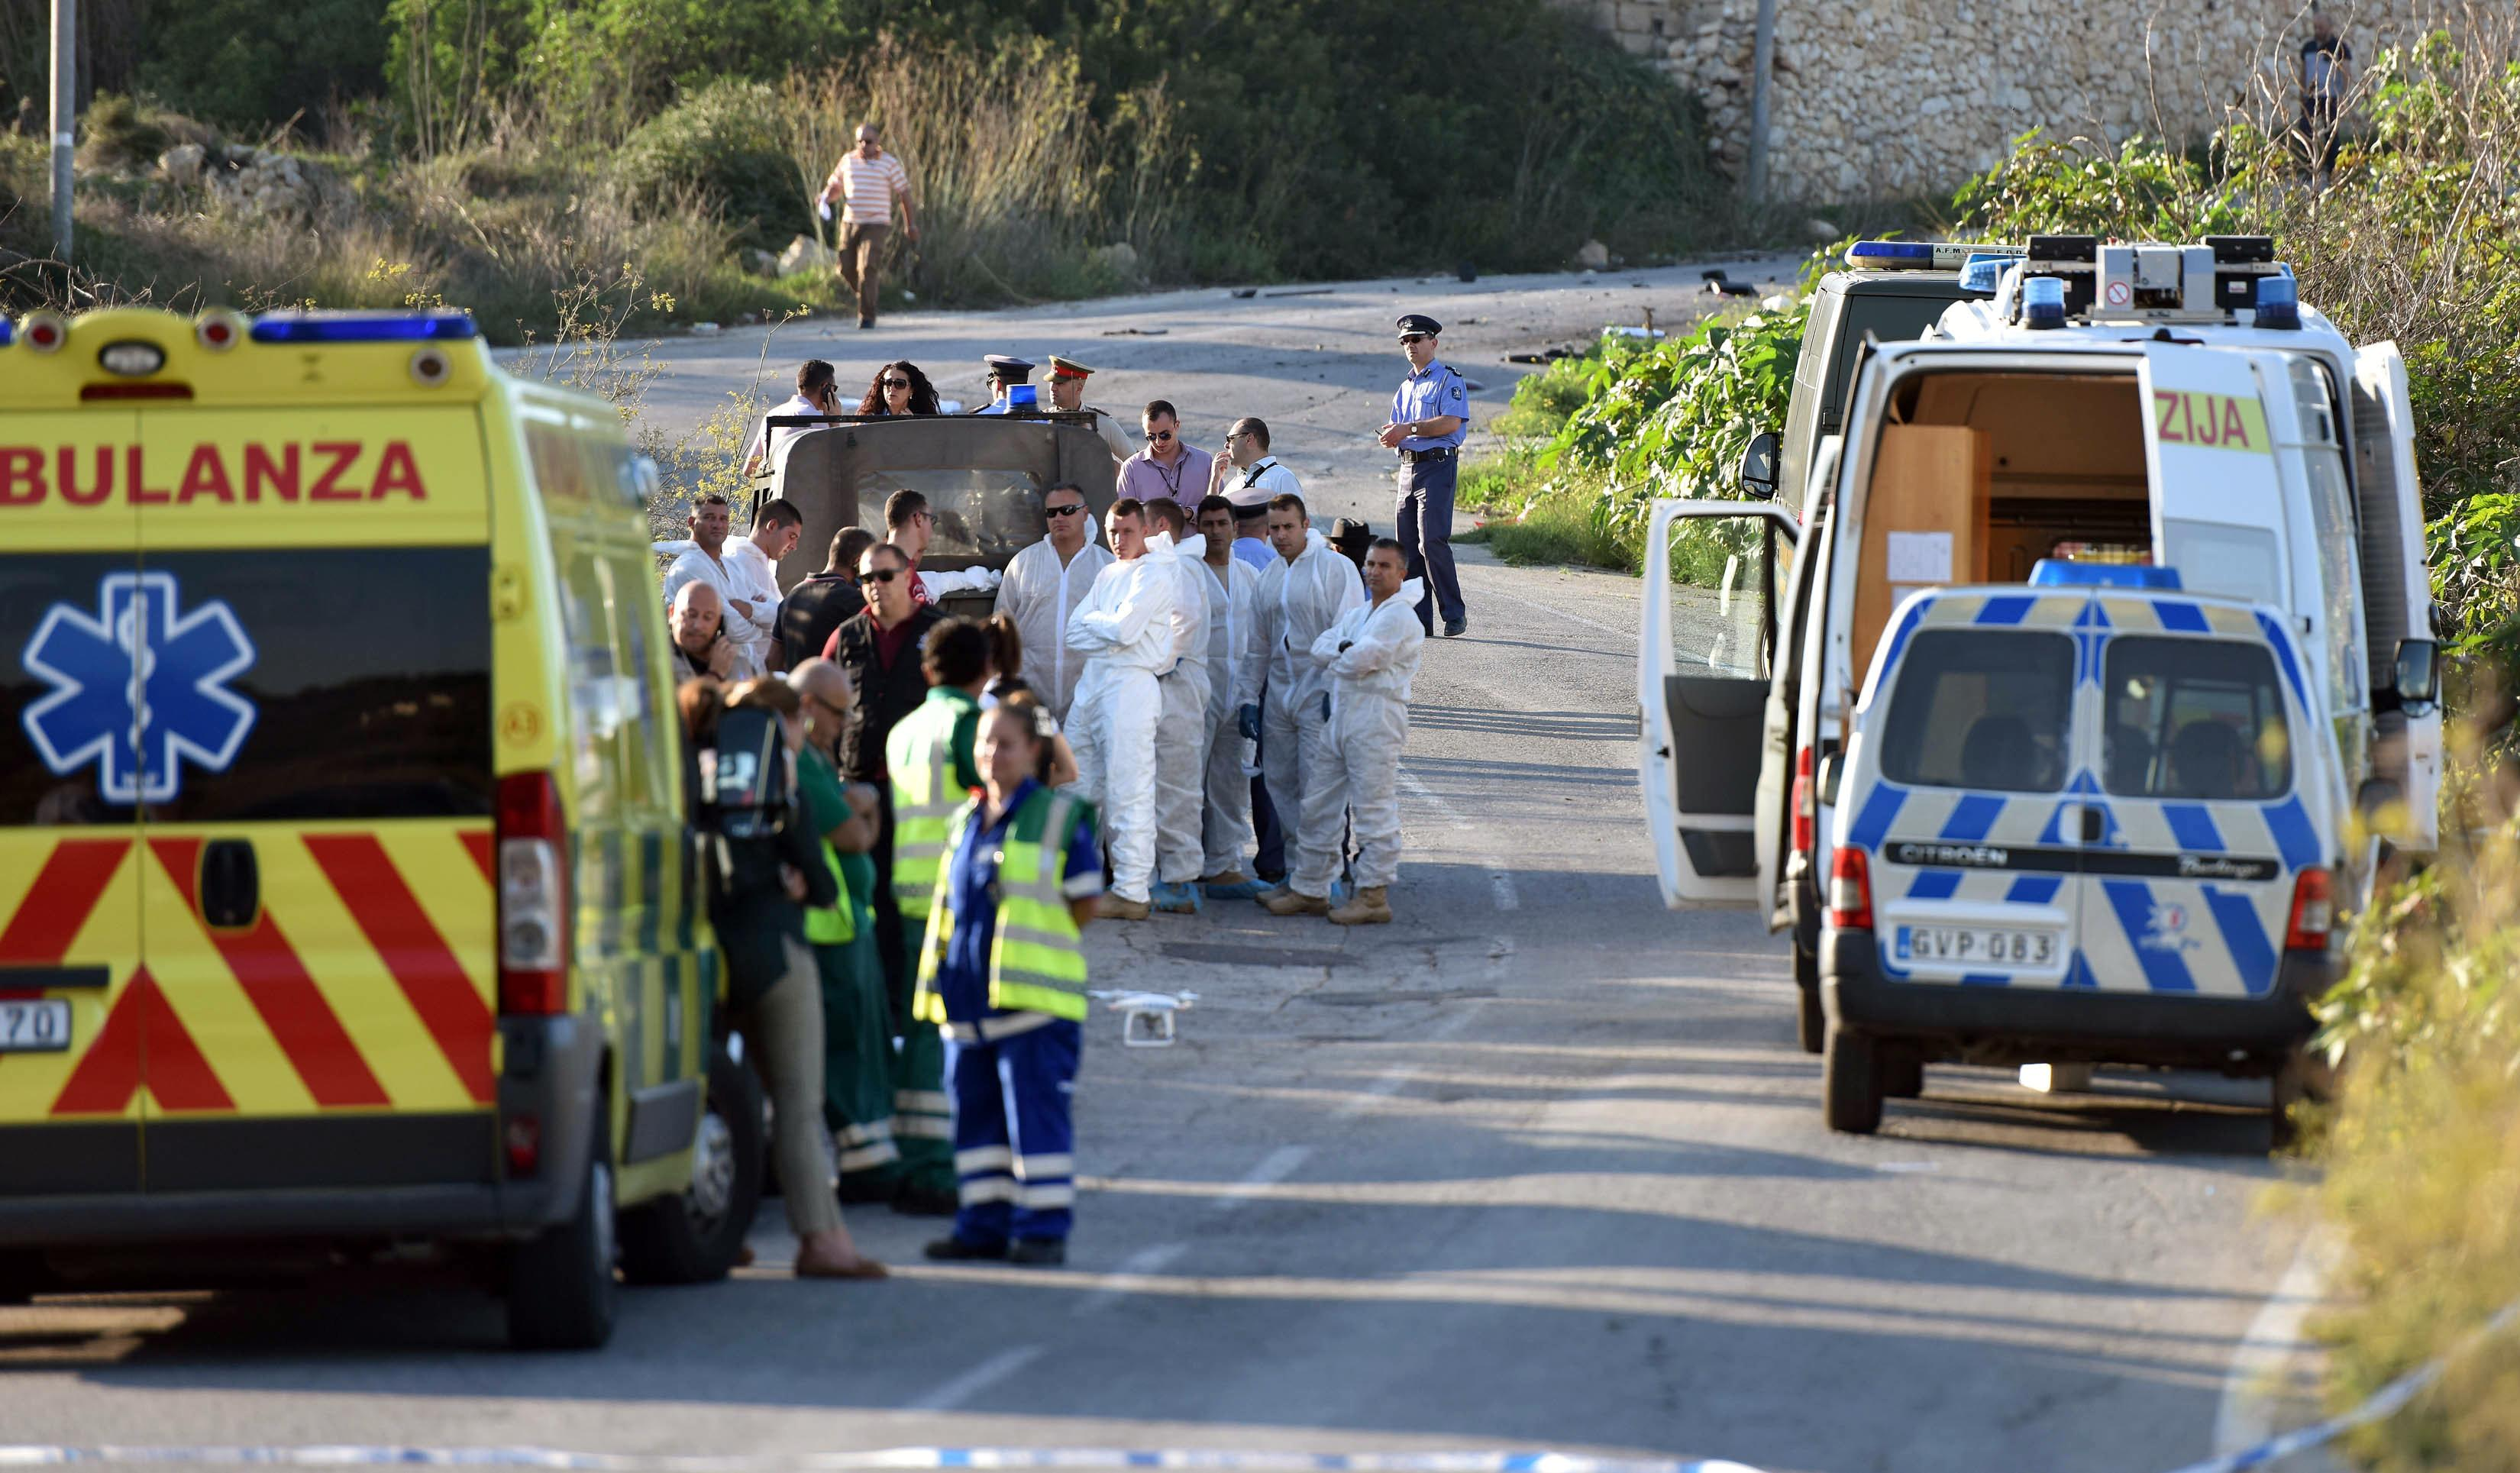 An ambulance is parked along the road where a car bomb exploded killing investigative journalist Daphne Caruana Galizia, in the town of Mosta, Malta, Monday, Oct. 16, 2017. Malta's prime minister says a car bomb has killed an investigative journalist on the island nation. Prime Minister Joseph Muscat said the bomb that killed reporter Daphne Caruana Galizia exploded Monday afternoon as she left her home in a town outside Malta's capital, Valetta. (AP Photo/Rene Rossignaud)